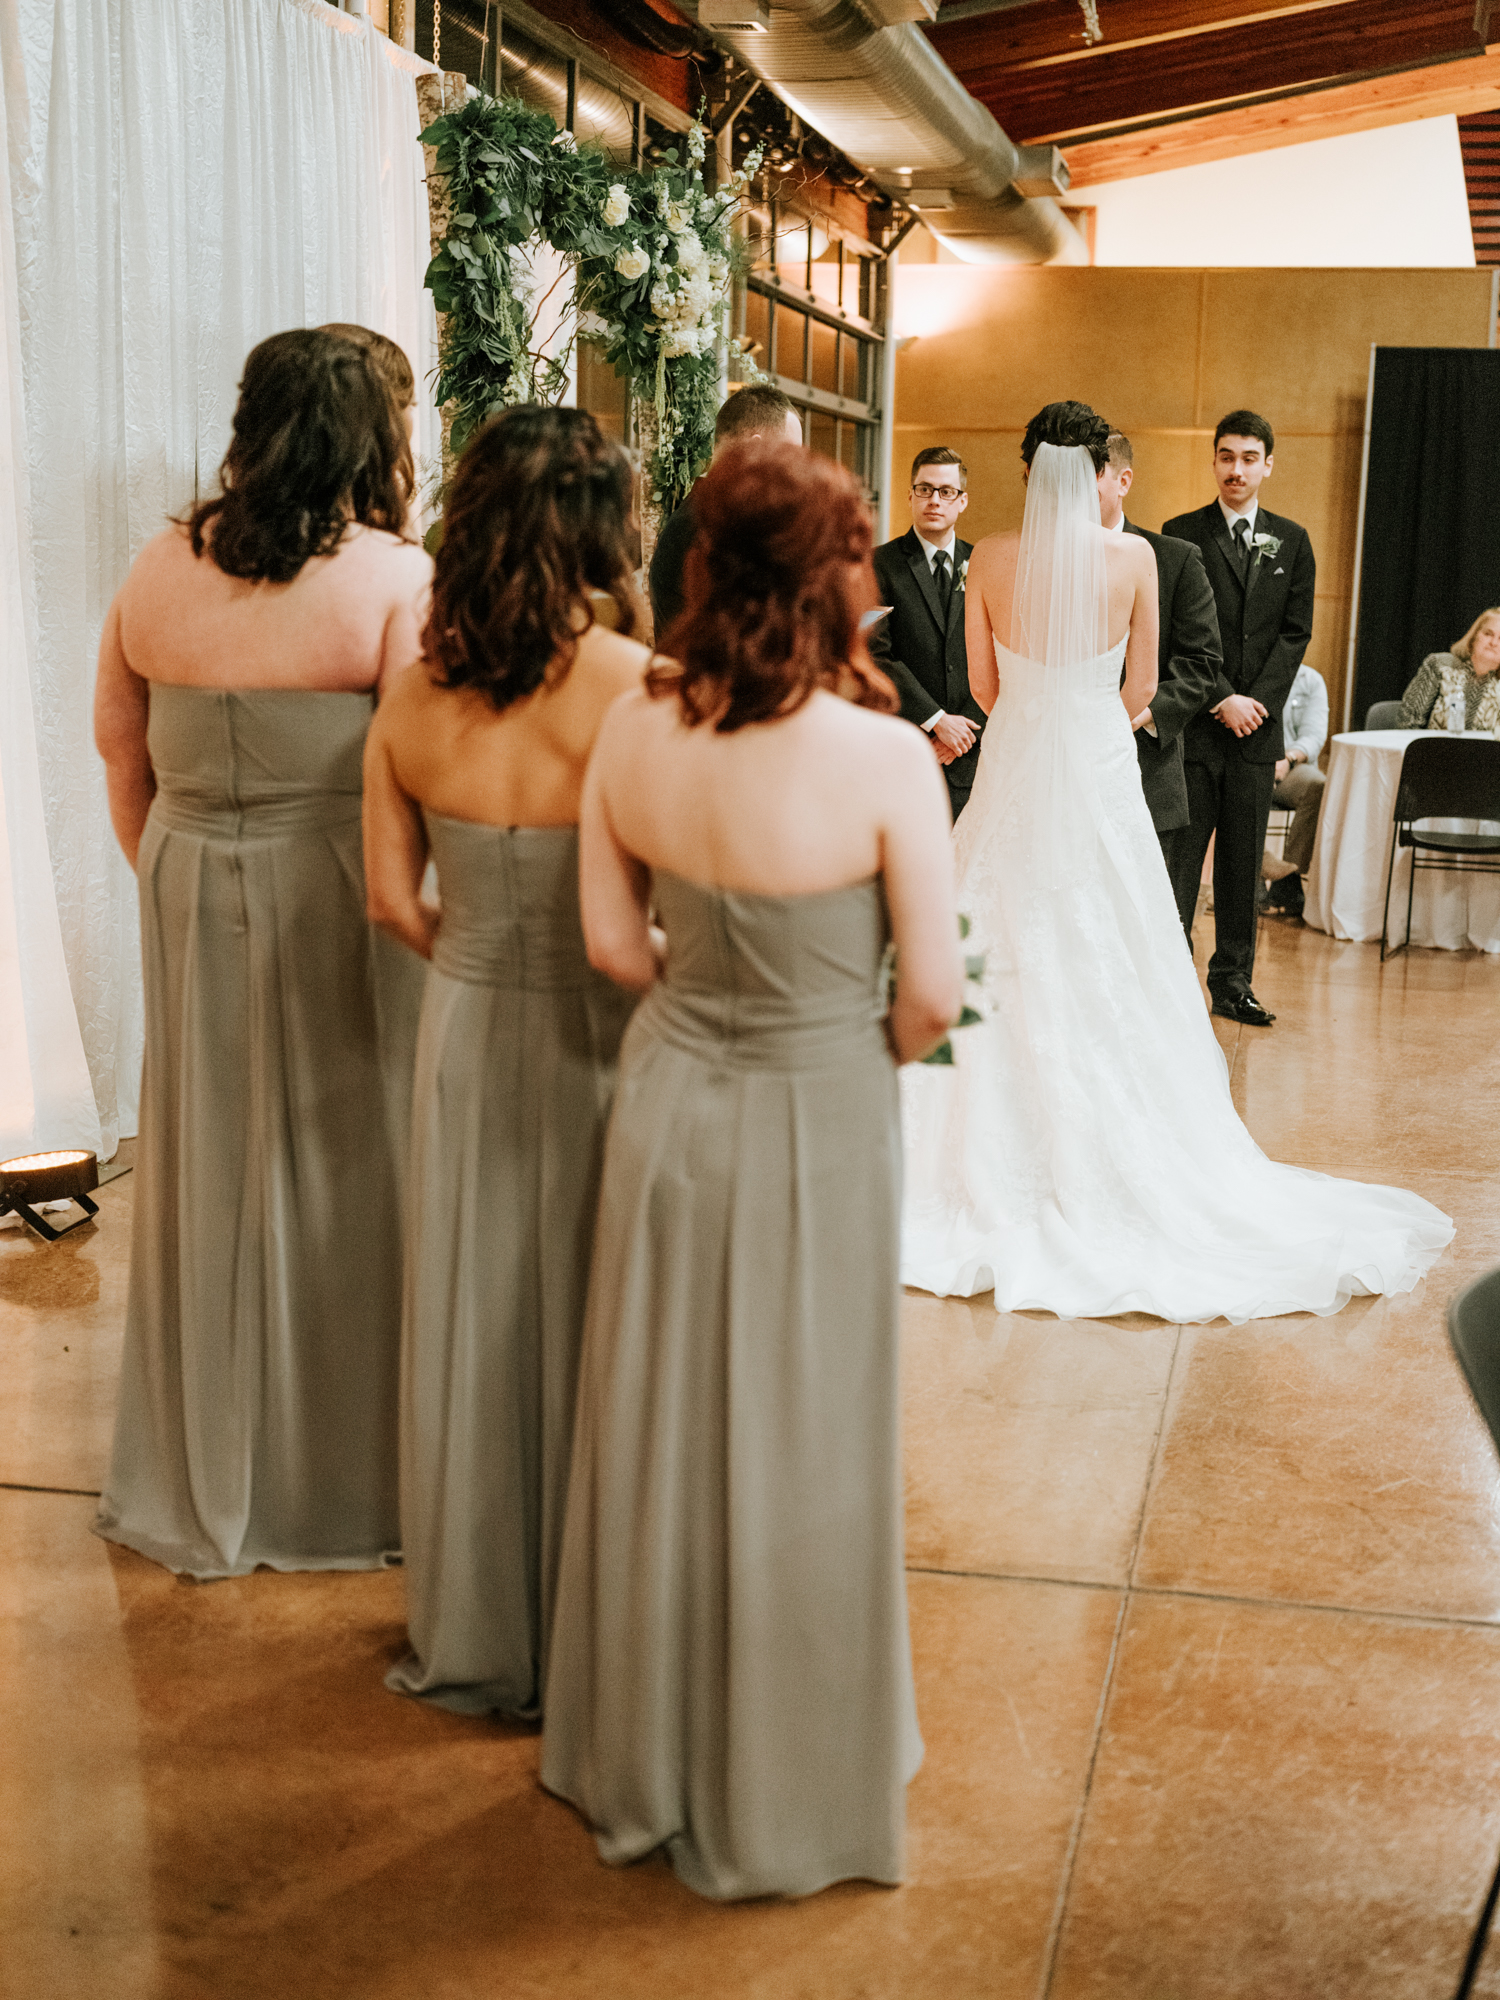 Stolen Glimpses Seattle Wedding Photographers 66.jpg